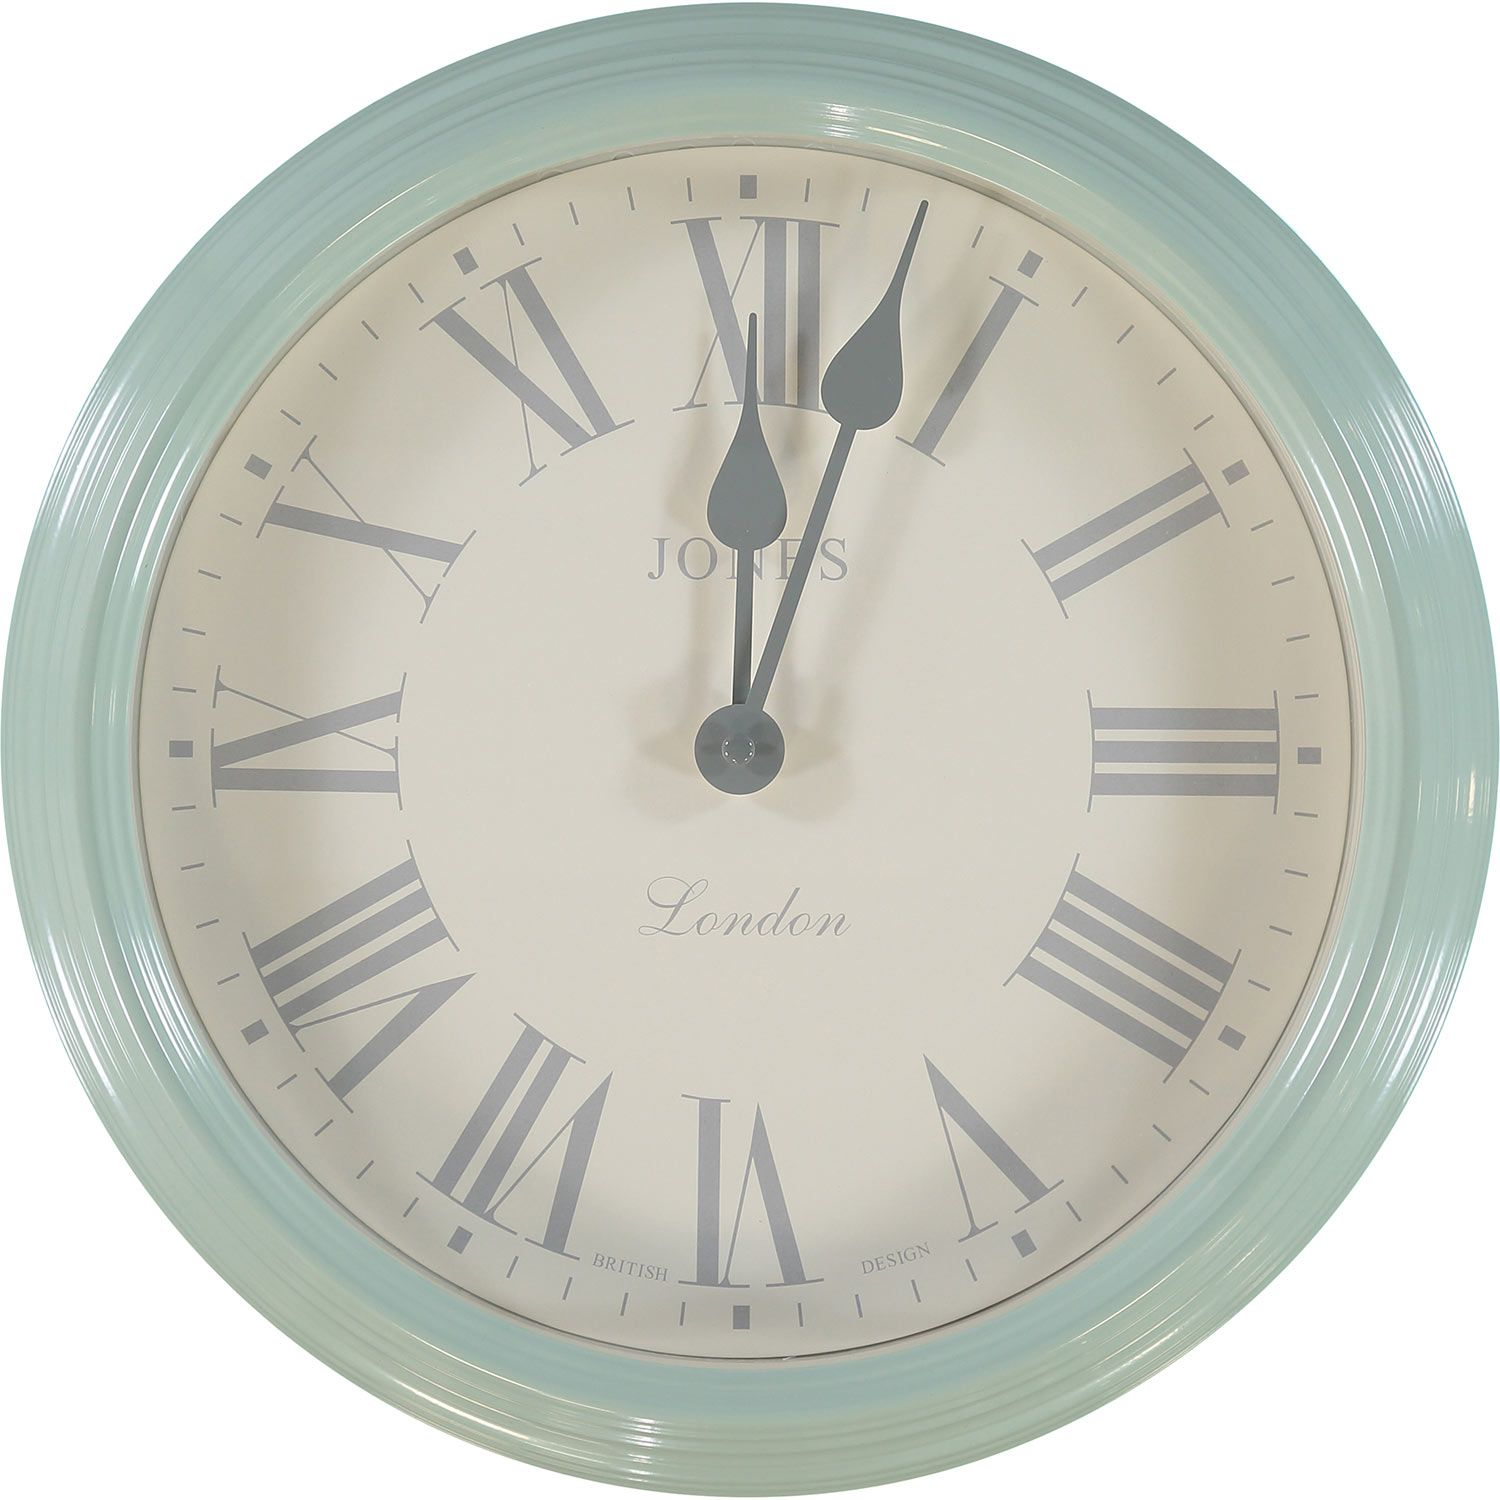 Jones clocks large savoy duck egg blue wall clock tk maxx jones clocks large savoy duck egg blue wall clock tk maxx amipublicfo Image collections